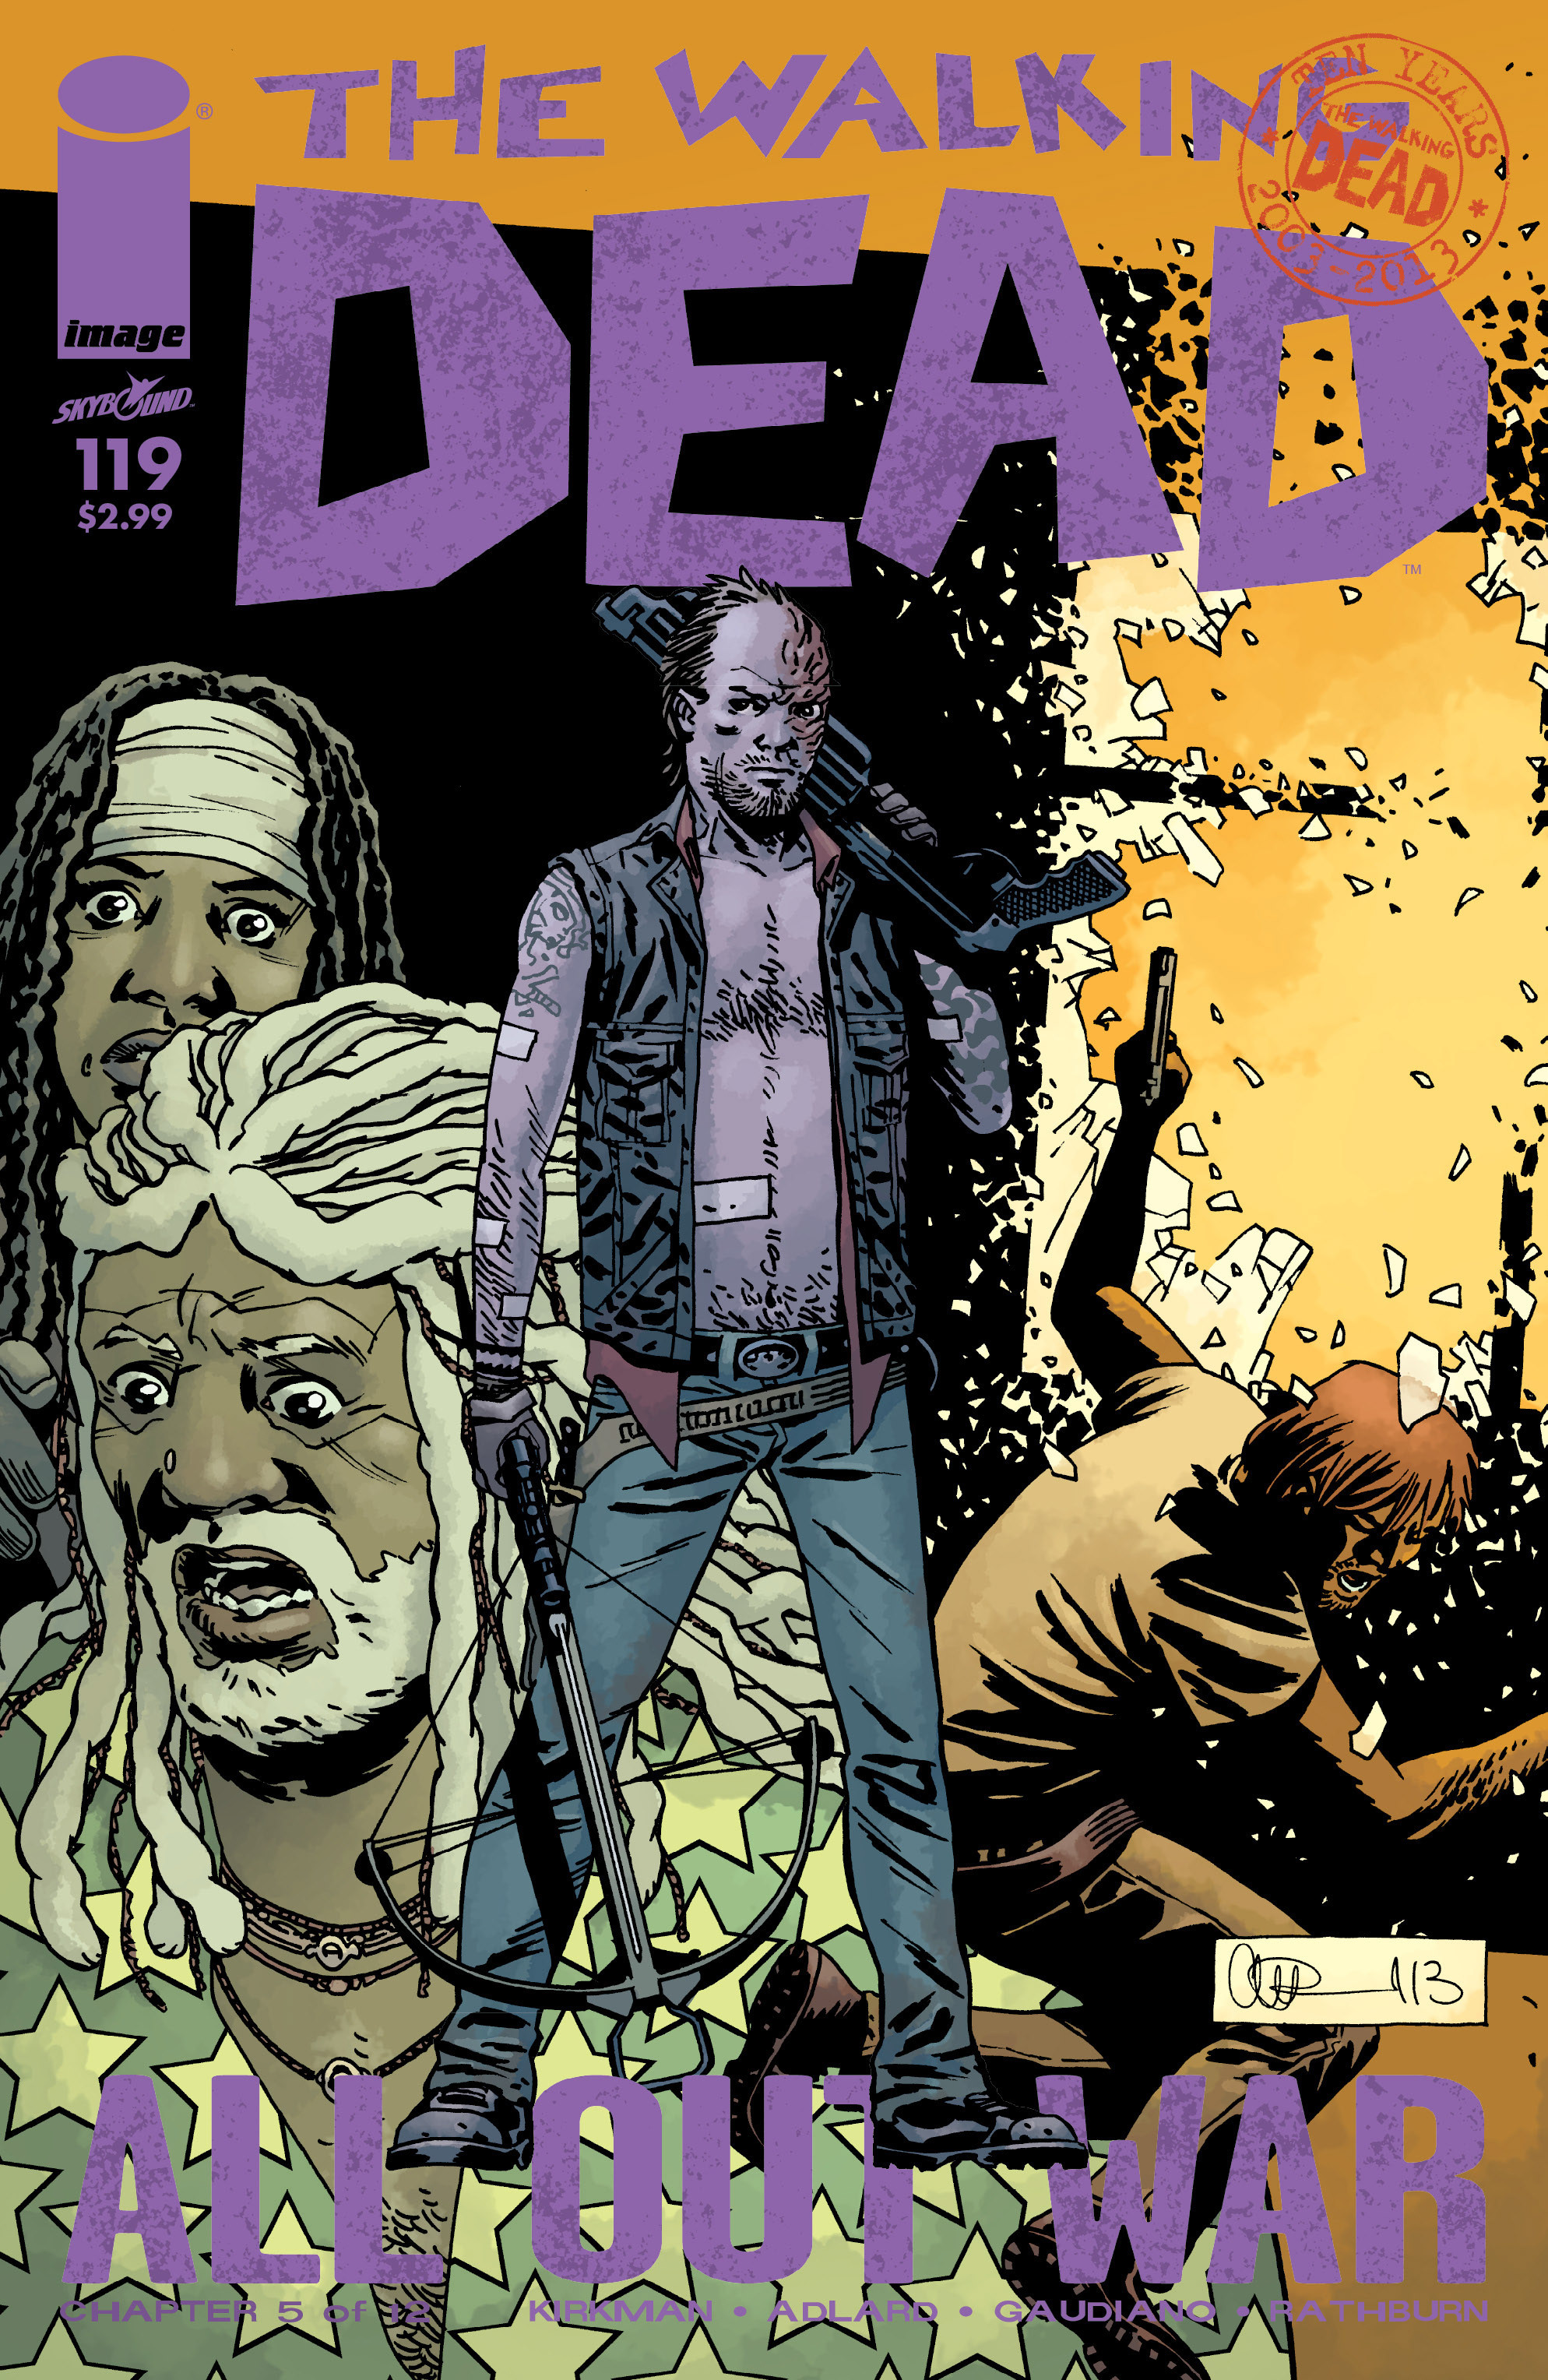 The Walking Dead 119 Page 1